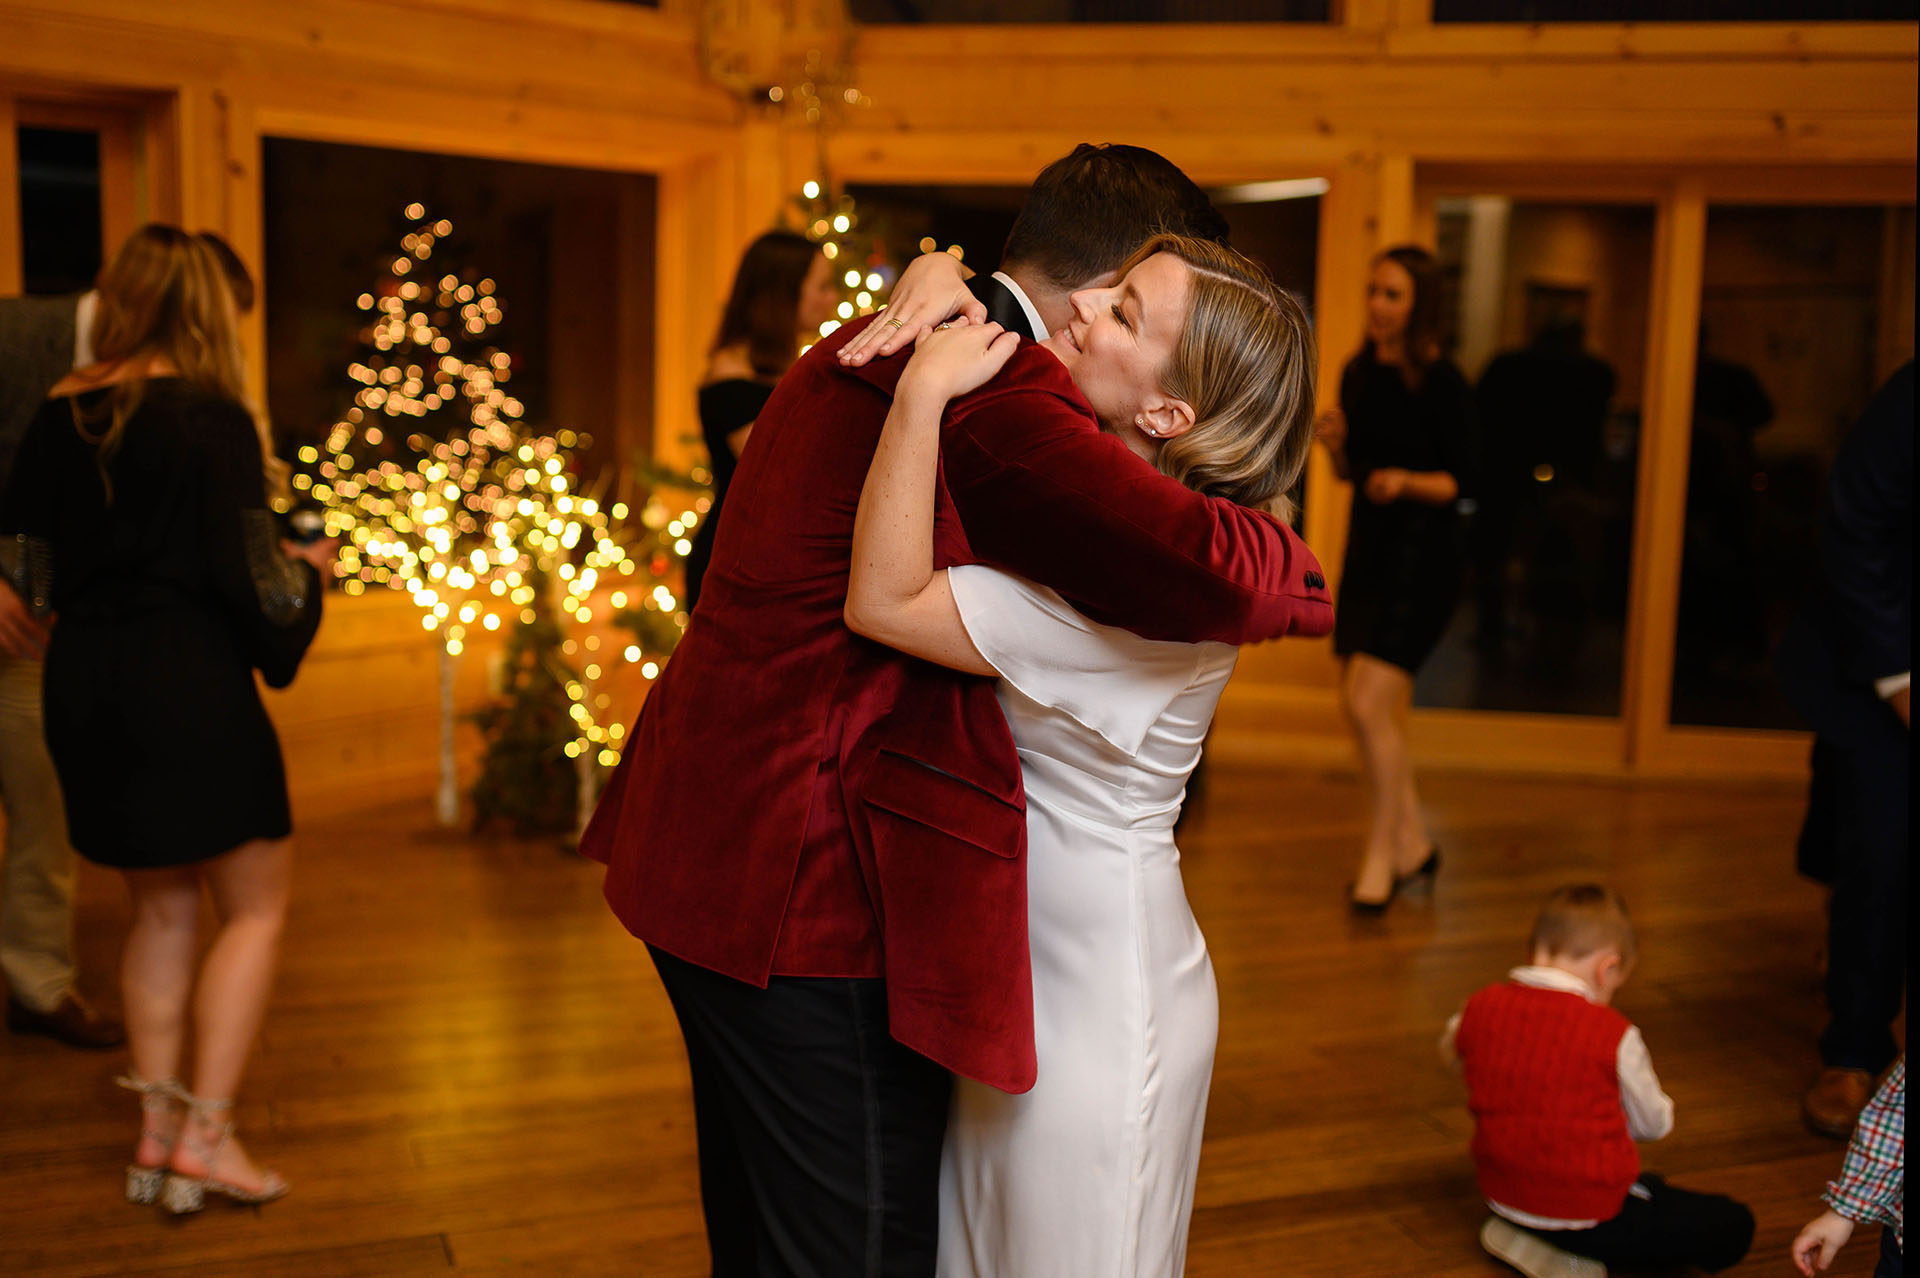 NY Airbnb of Catskill - Wedding Reception Photo | The bride and groom share a hug